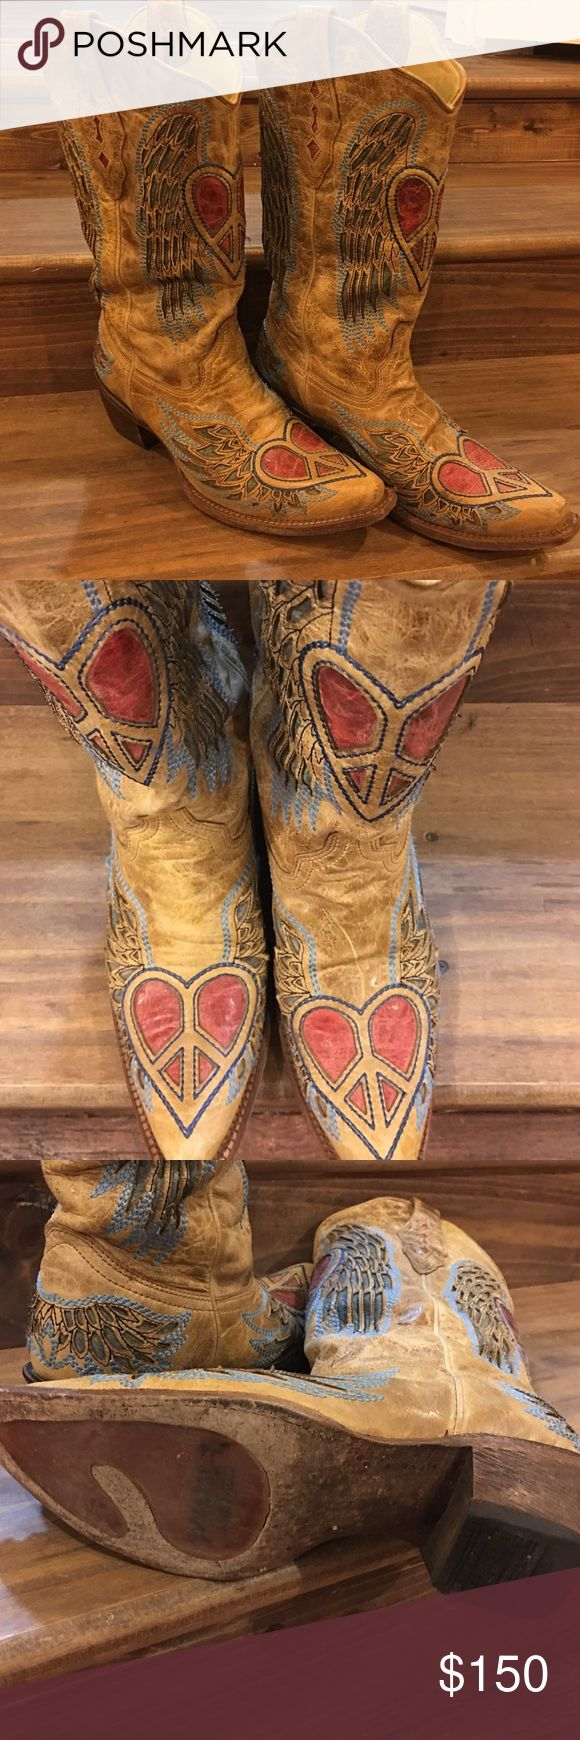 Corral Vintage Boots. Great condition Size 8 1/2M Corral Vintage Boots. Great condition Size 8 1/2M, so much detail on these boots and they are very comfortable. A slight bit of scuff on the toe and heel (normal wear). Ready for a new home. Corral Vintage Shoes Heeled Boots